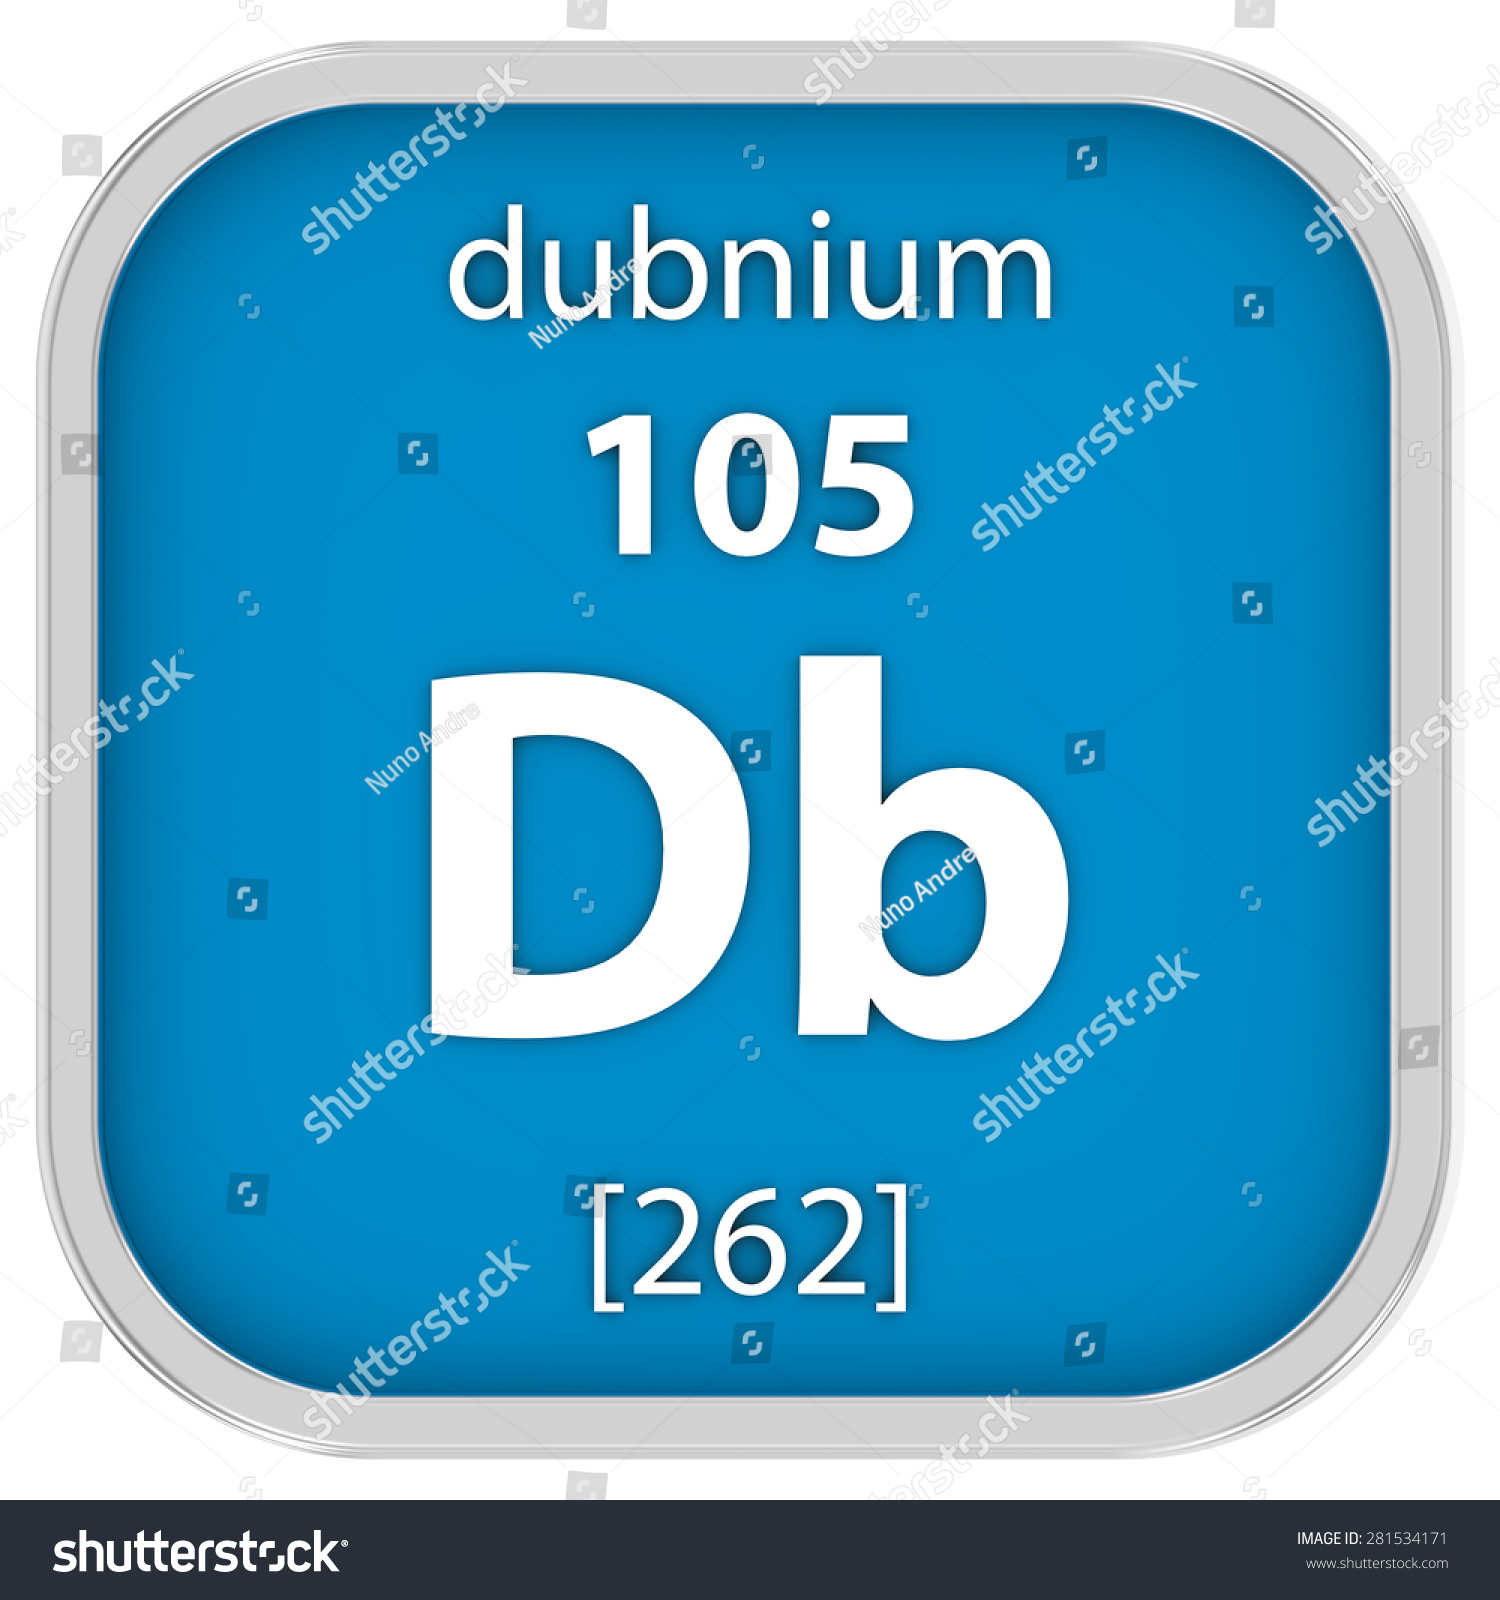 Periodic table for carbon images periodic table images carbon dioxide symbol periodic table choice image periodic table dubnium periodic table image collections periodic table gamestrikefo Gallery